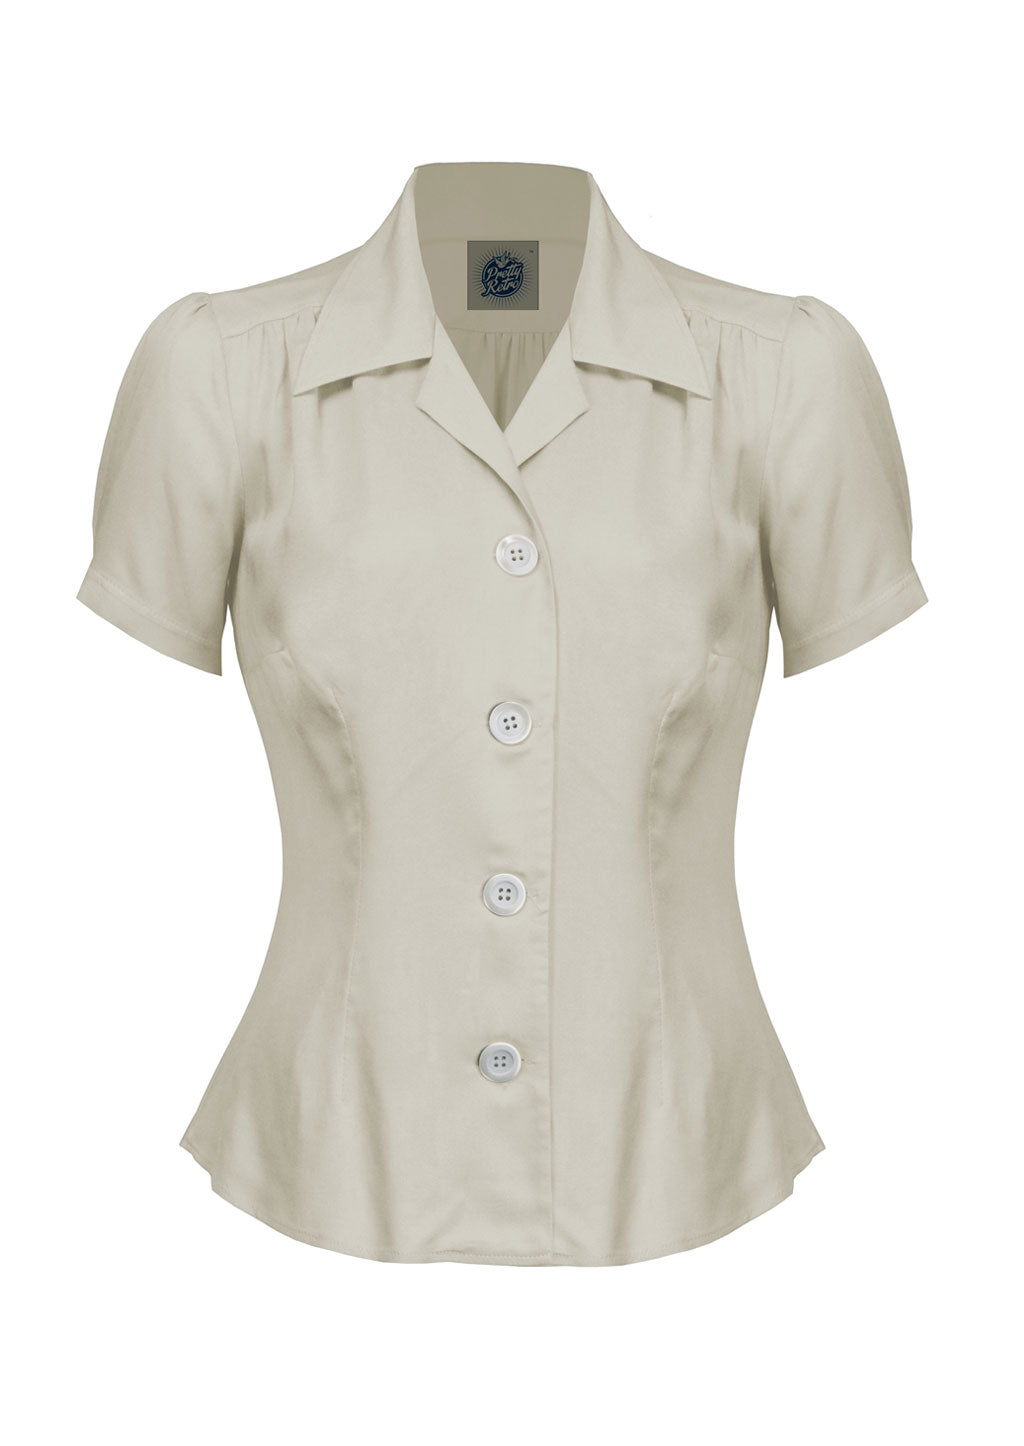 Classic 40s style Ivory Short Sleeve Blouse | Vintage Inspired | Weekend Dol